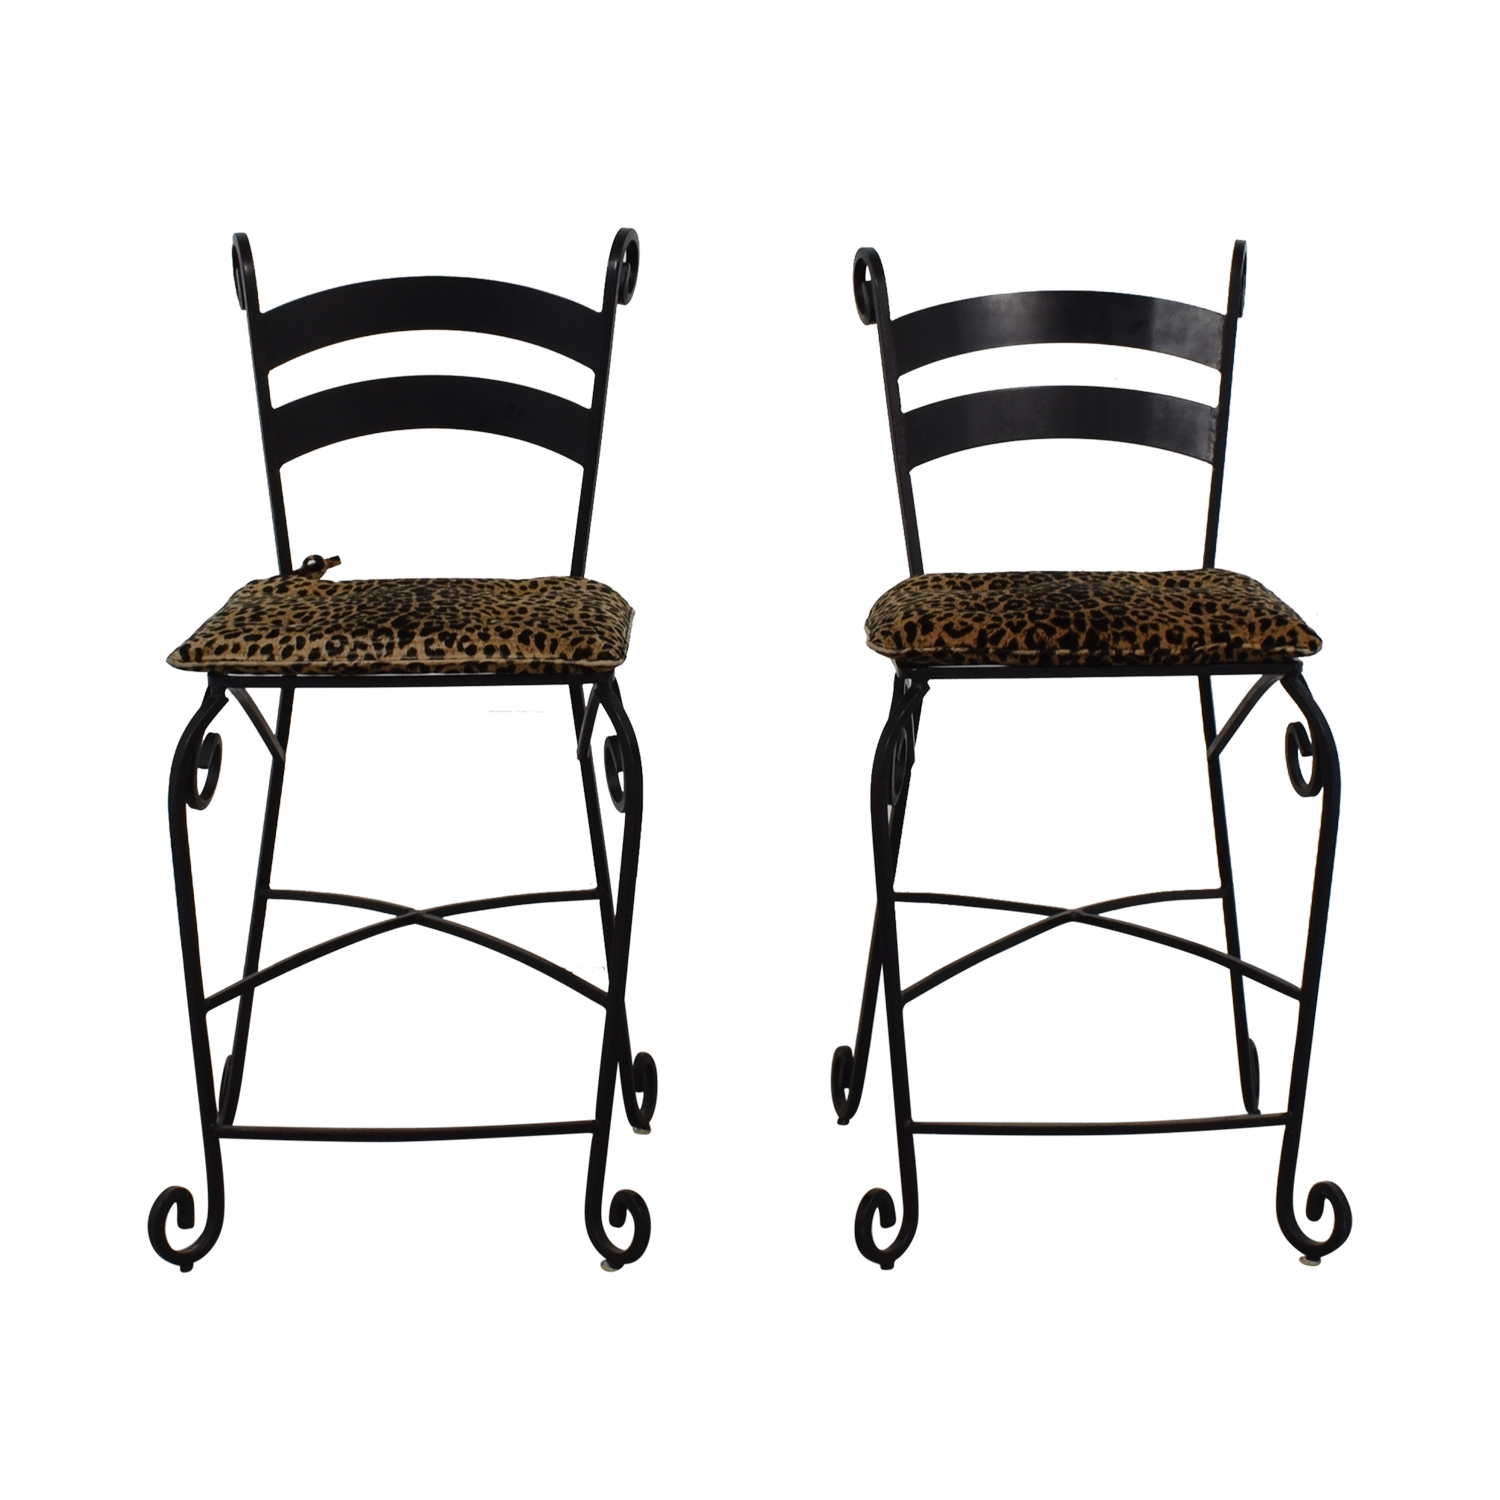 Leopard Counter Height Black Wrought Iron Stools price